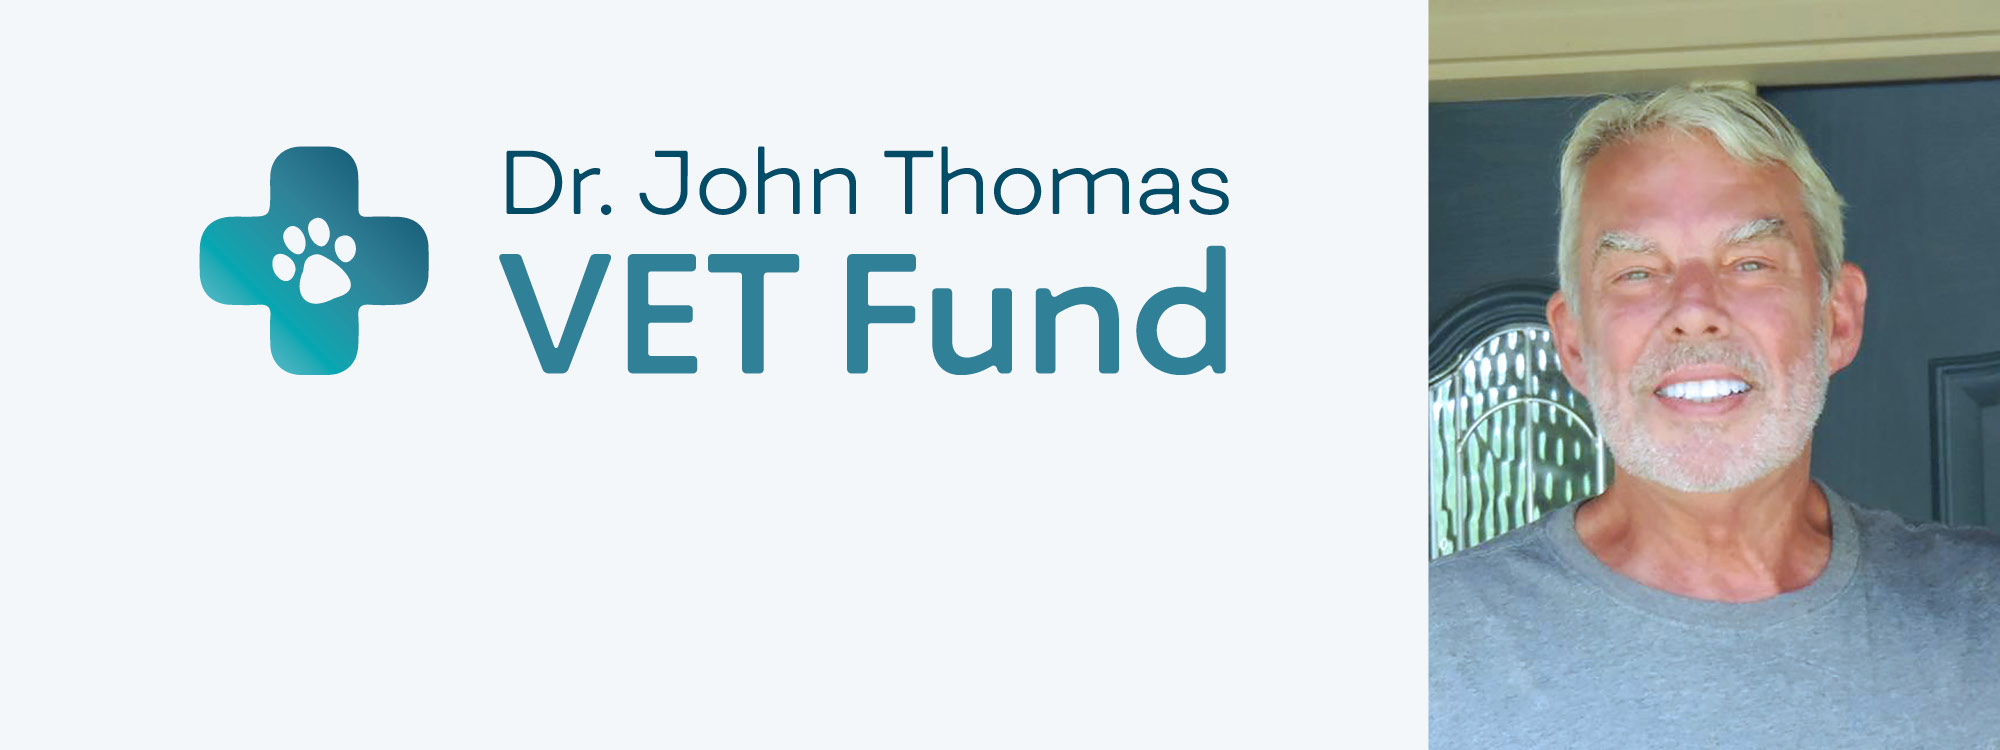 dr. john thomas smiling image on right hand side with dr. john thomas vet fund text